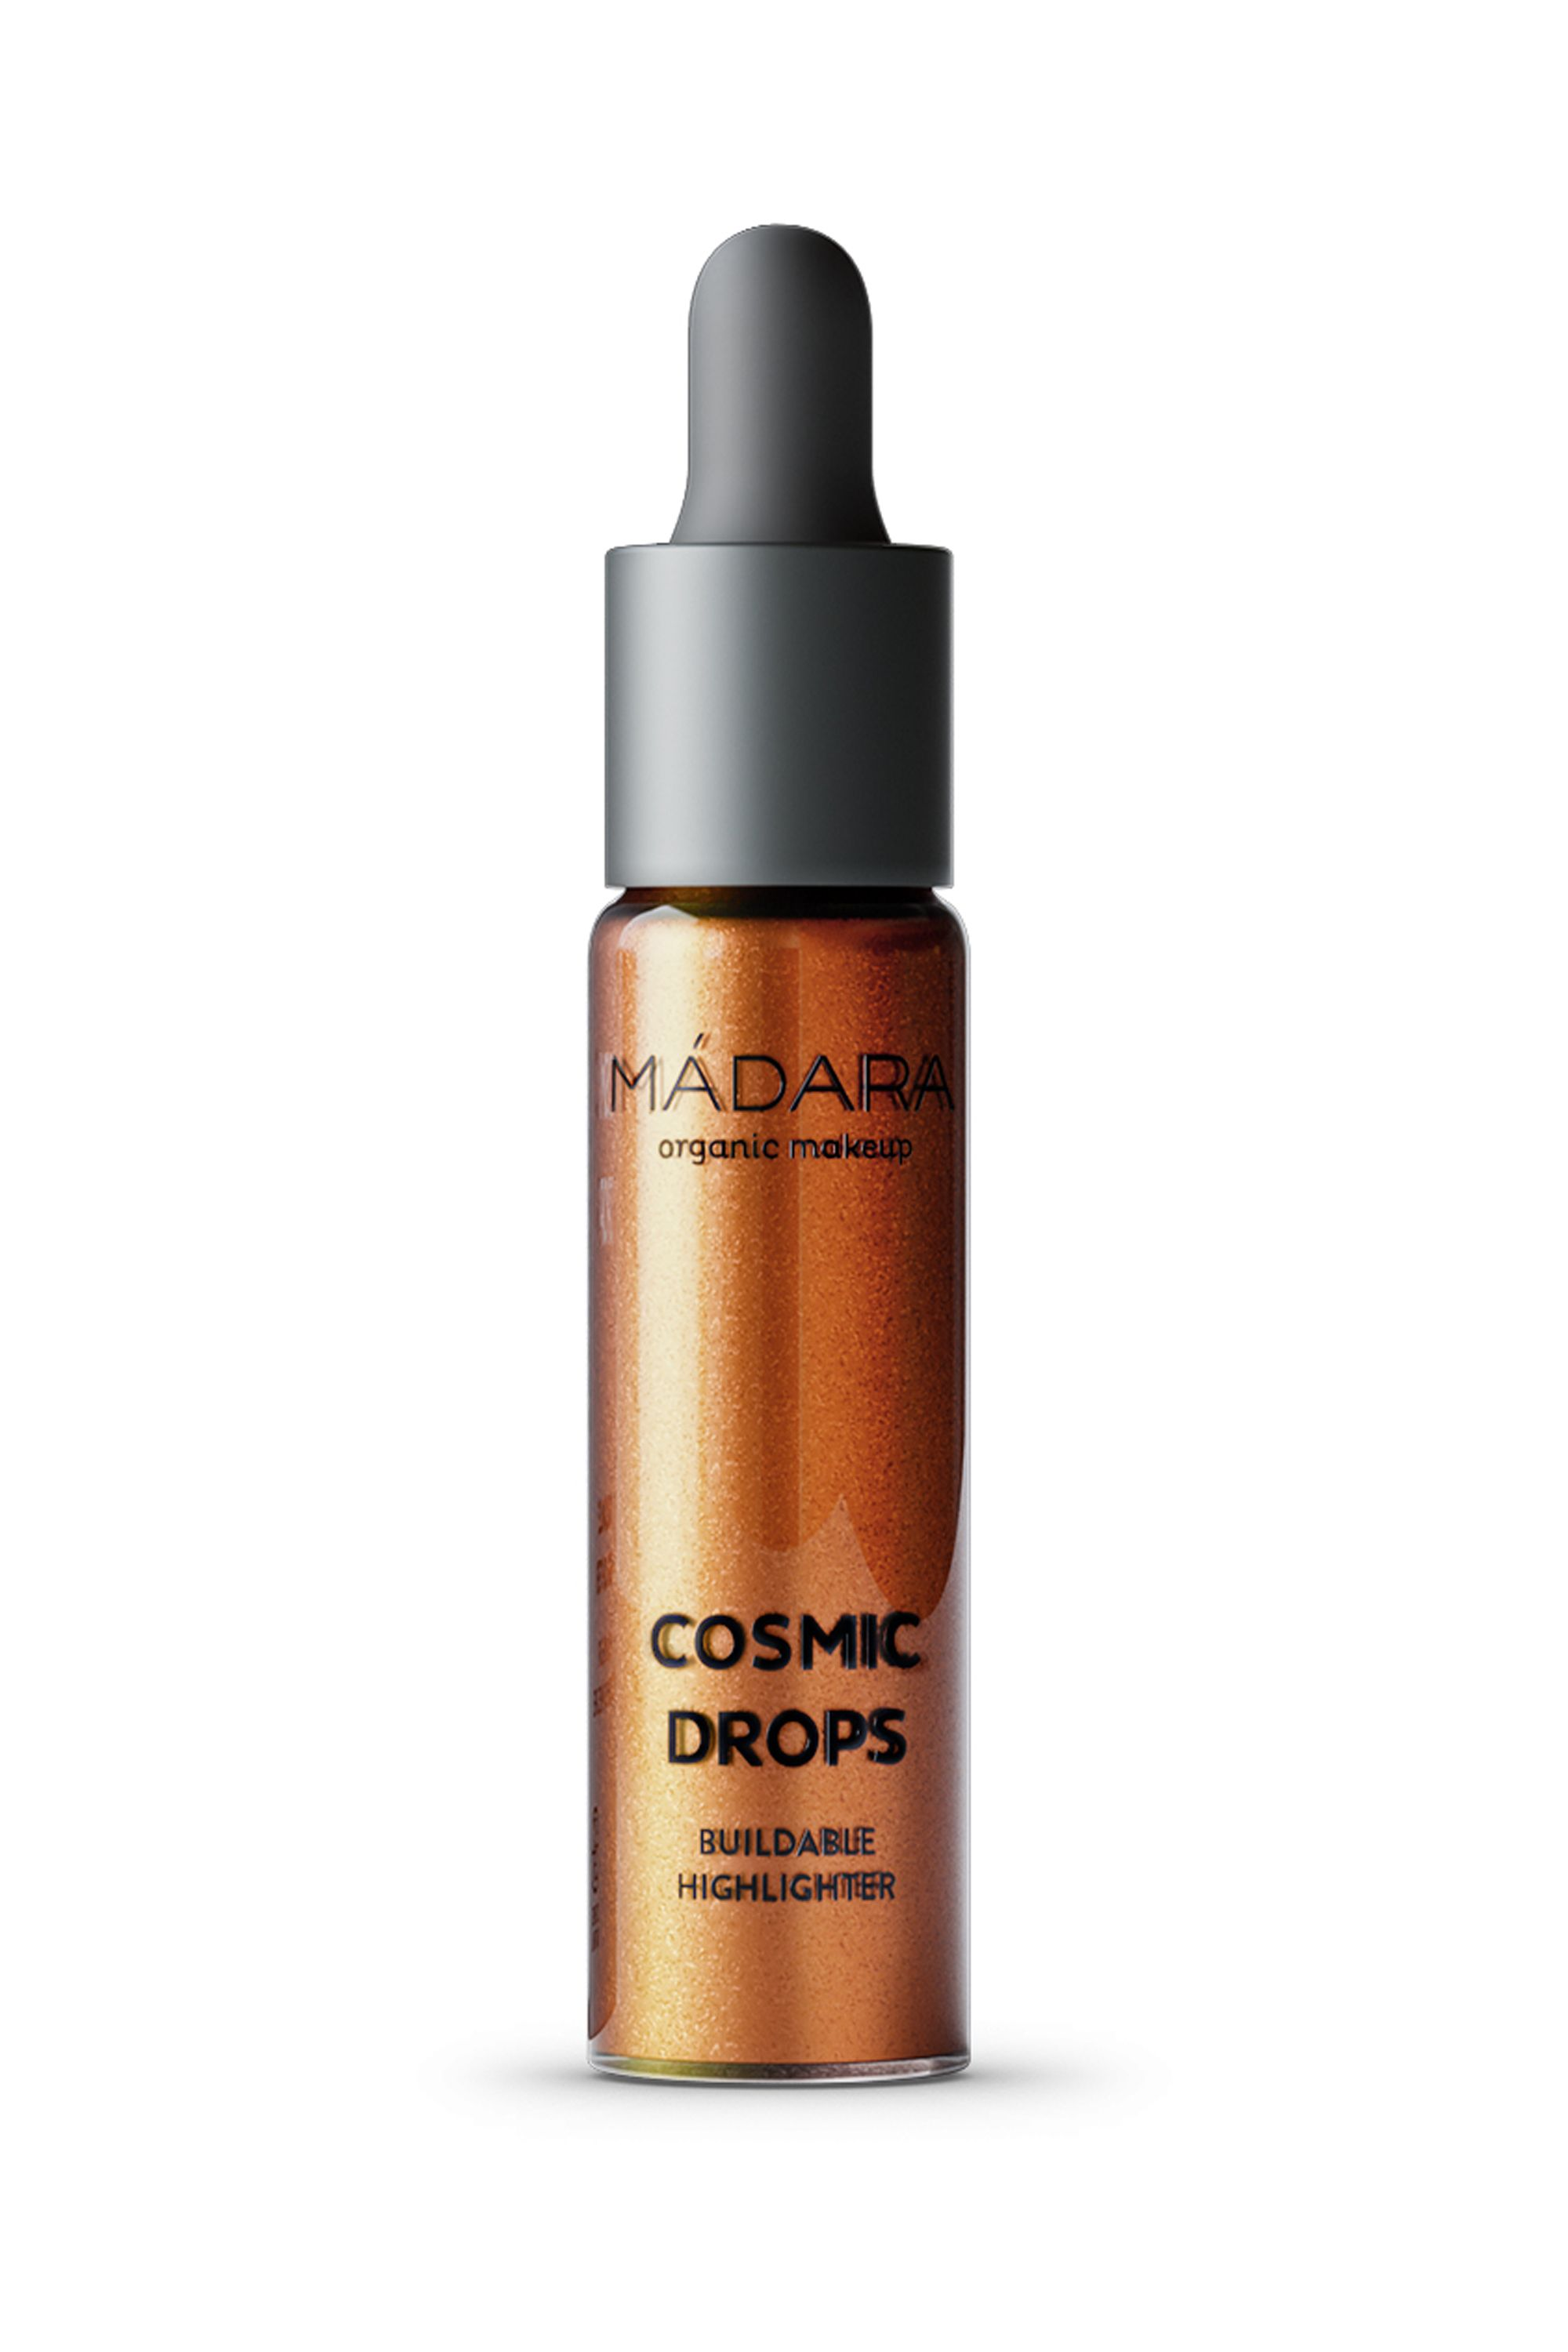 Blissim : Mádara Cosmetics - Highlighter liquide Cosmic Drops - 3 Burning Meteorite